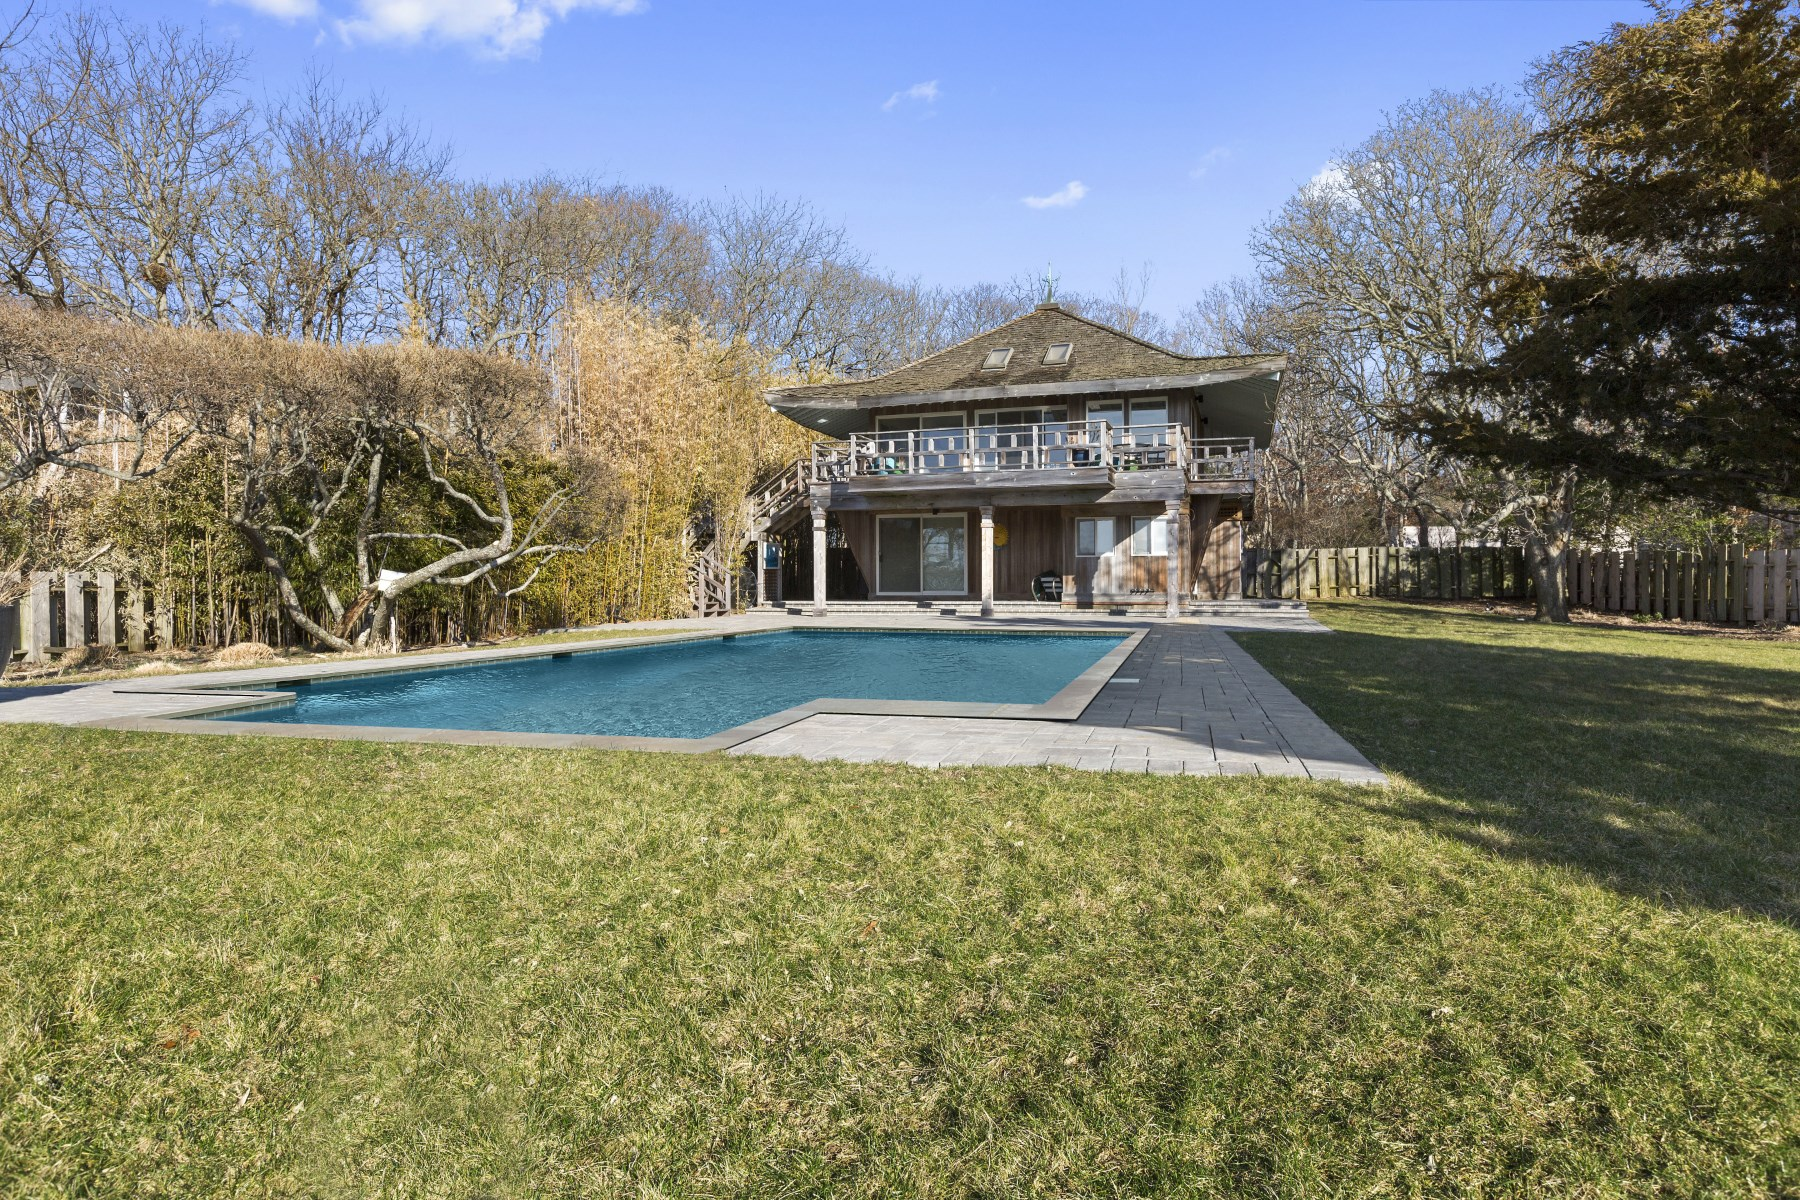 Single Family Home for Rent at Waterfront on Gardiners Bay 16 Bay Inlet Road East Hampton, New York 11937 United States